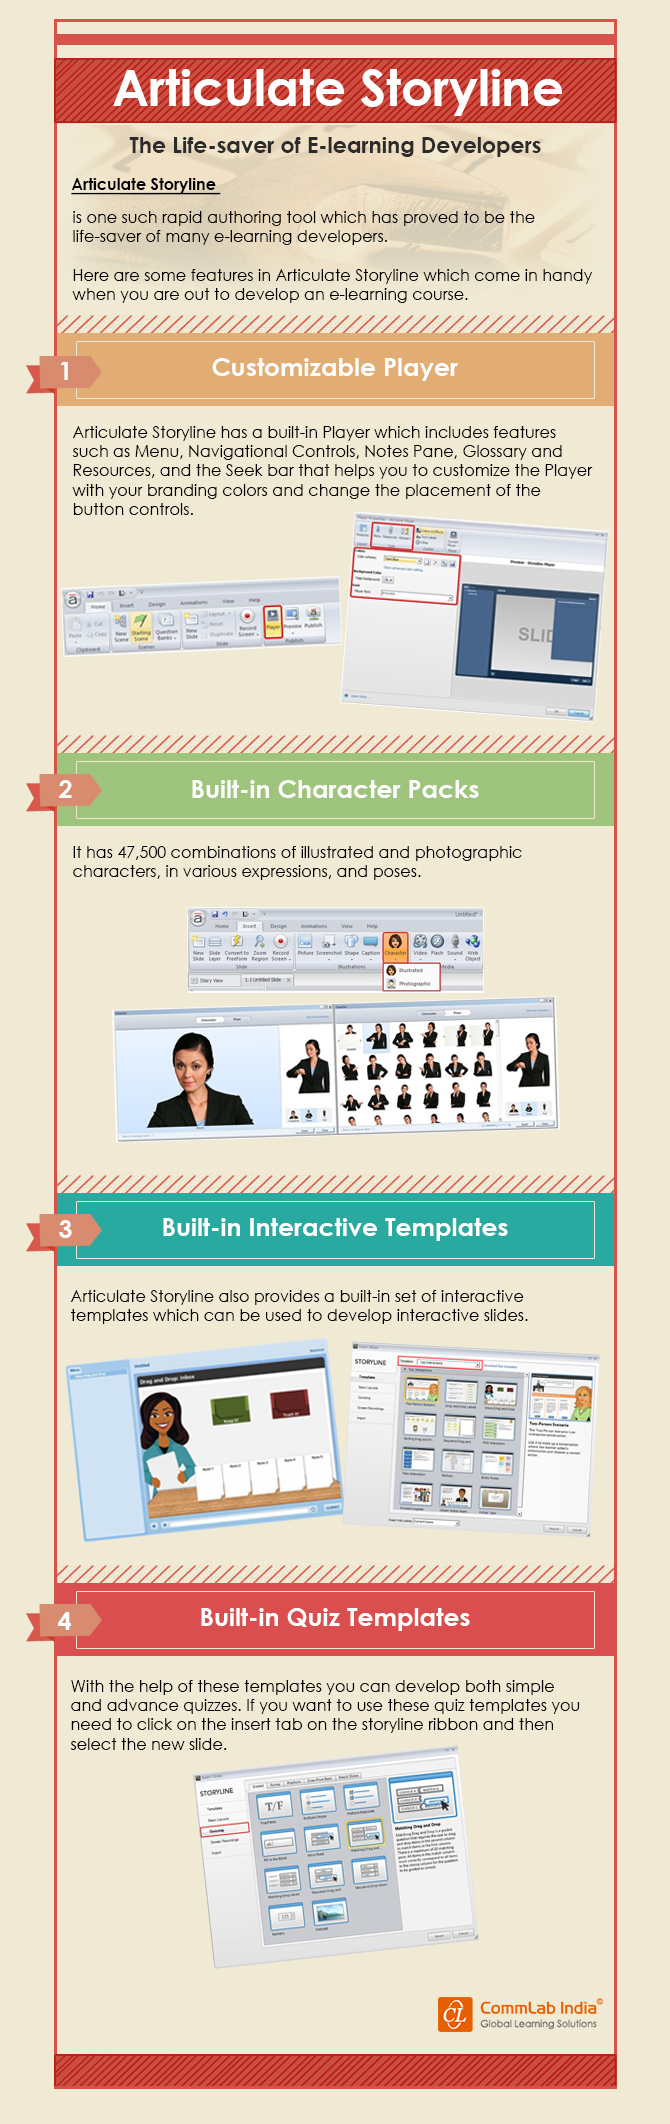 Articulate Storyline - The First Choice of E-learning Developers [Infographic]